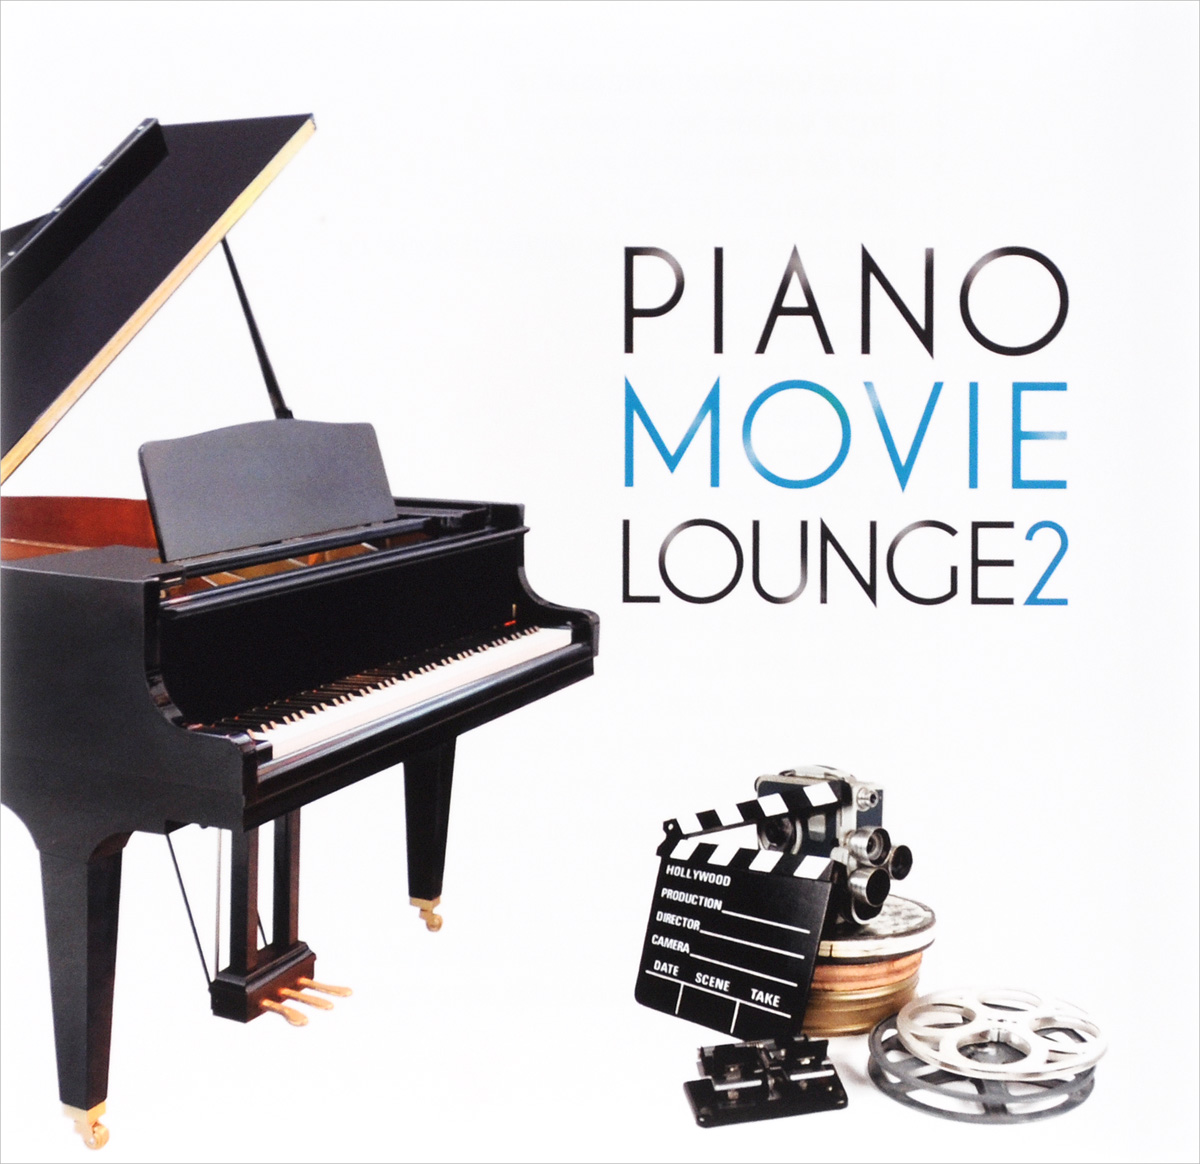 Piano Movie Lounge 2